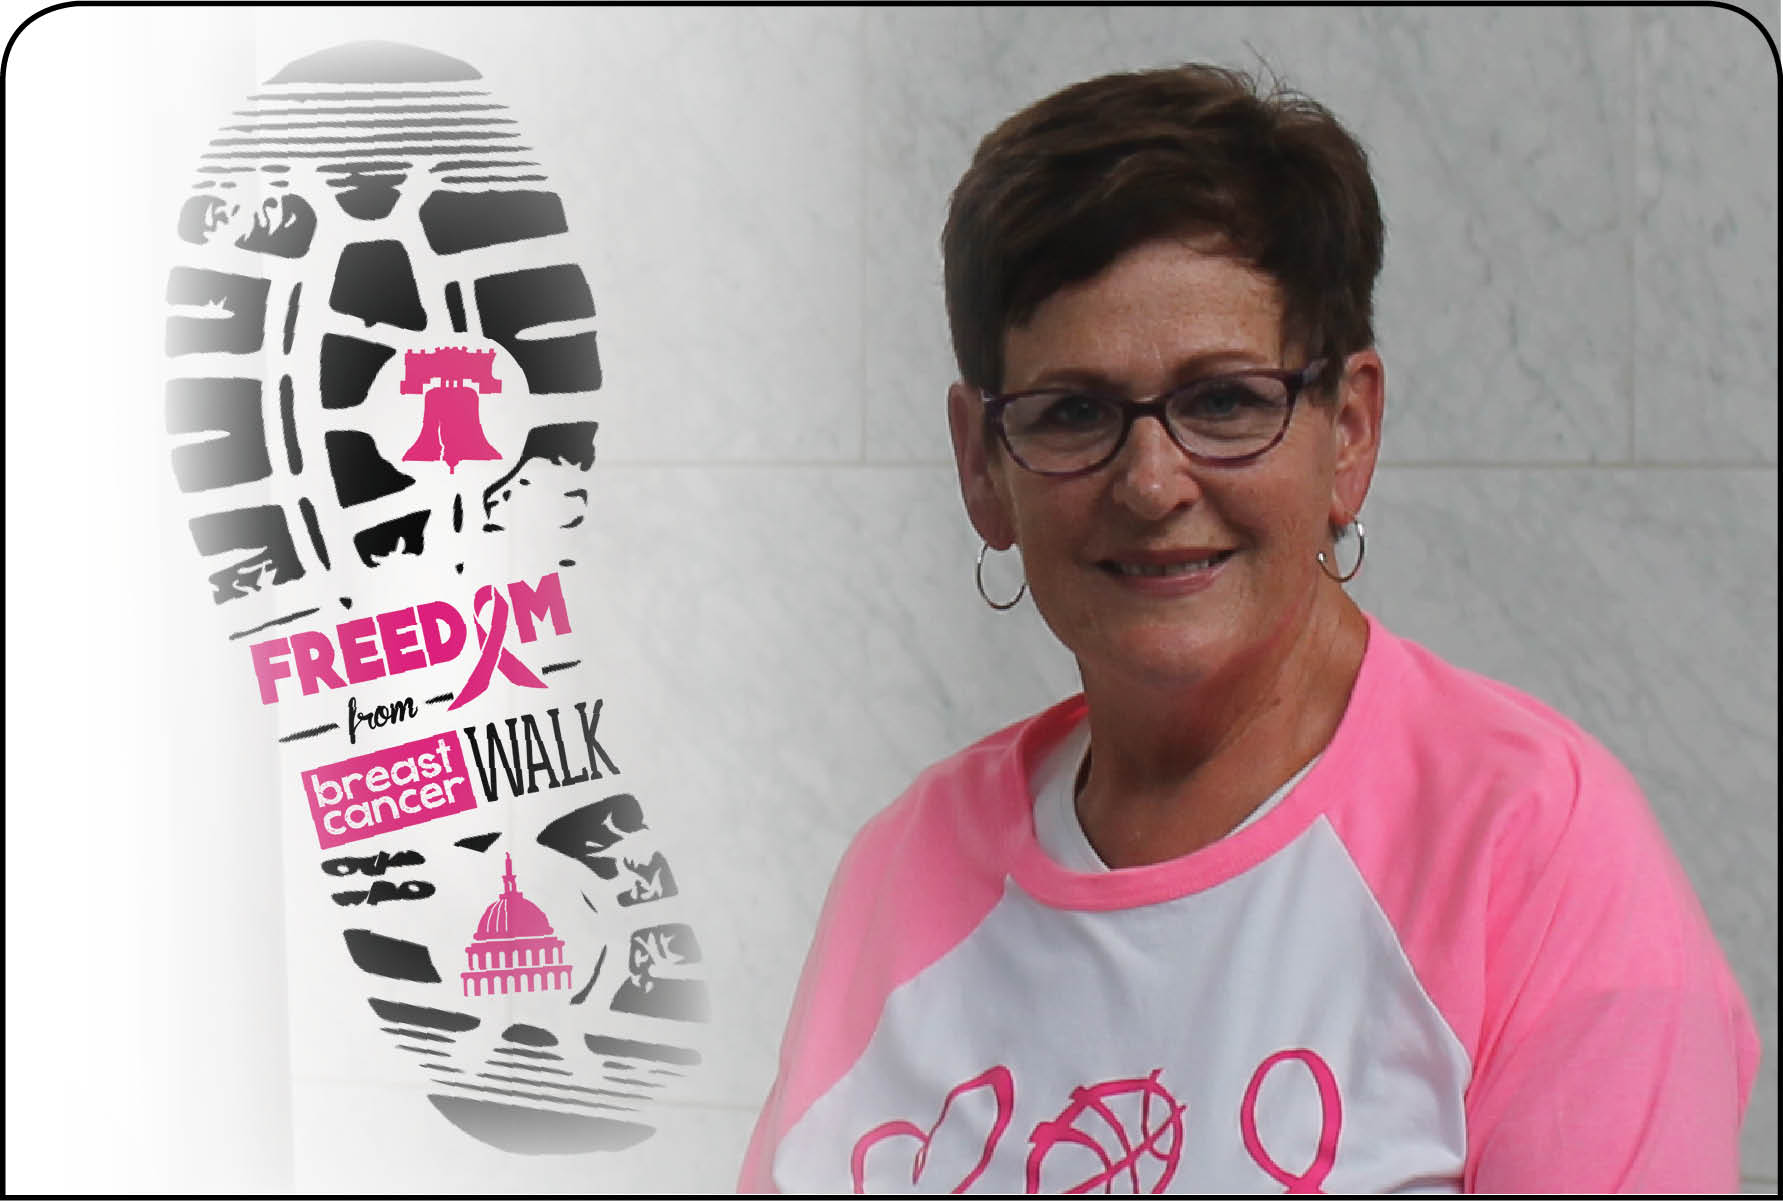 Freedom from Breast Cancer